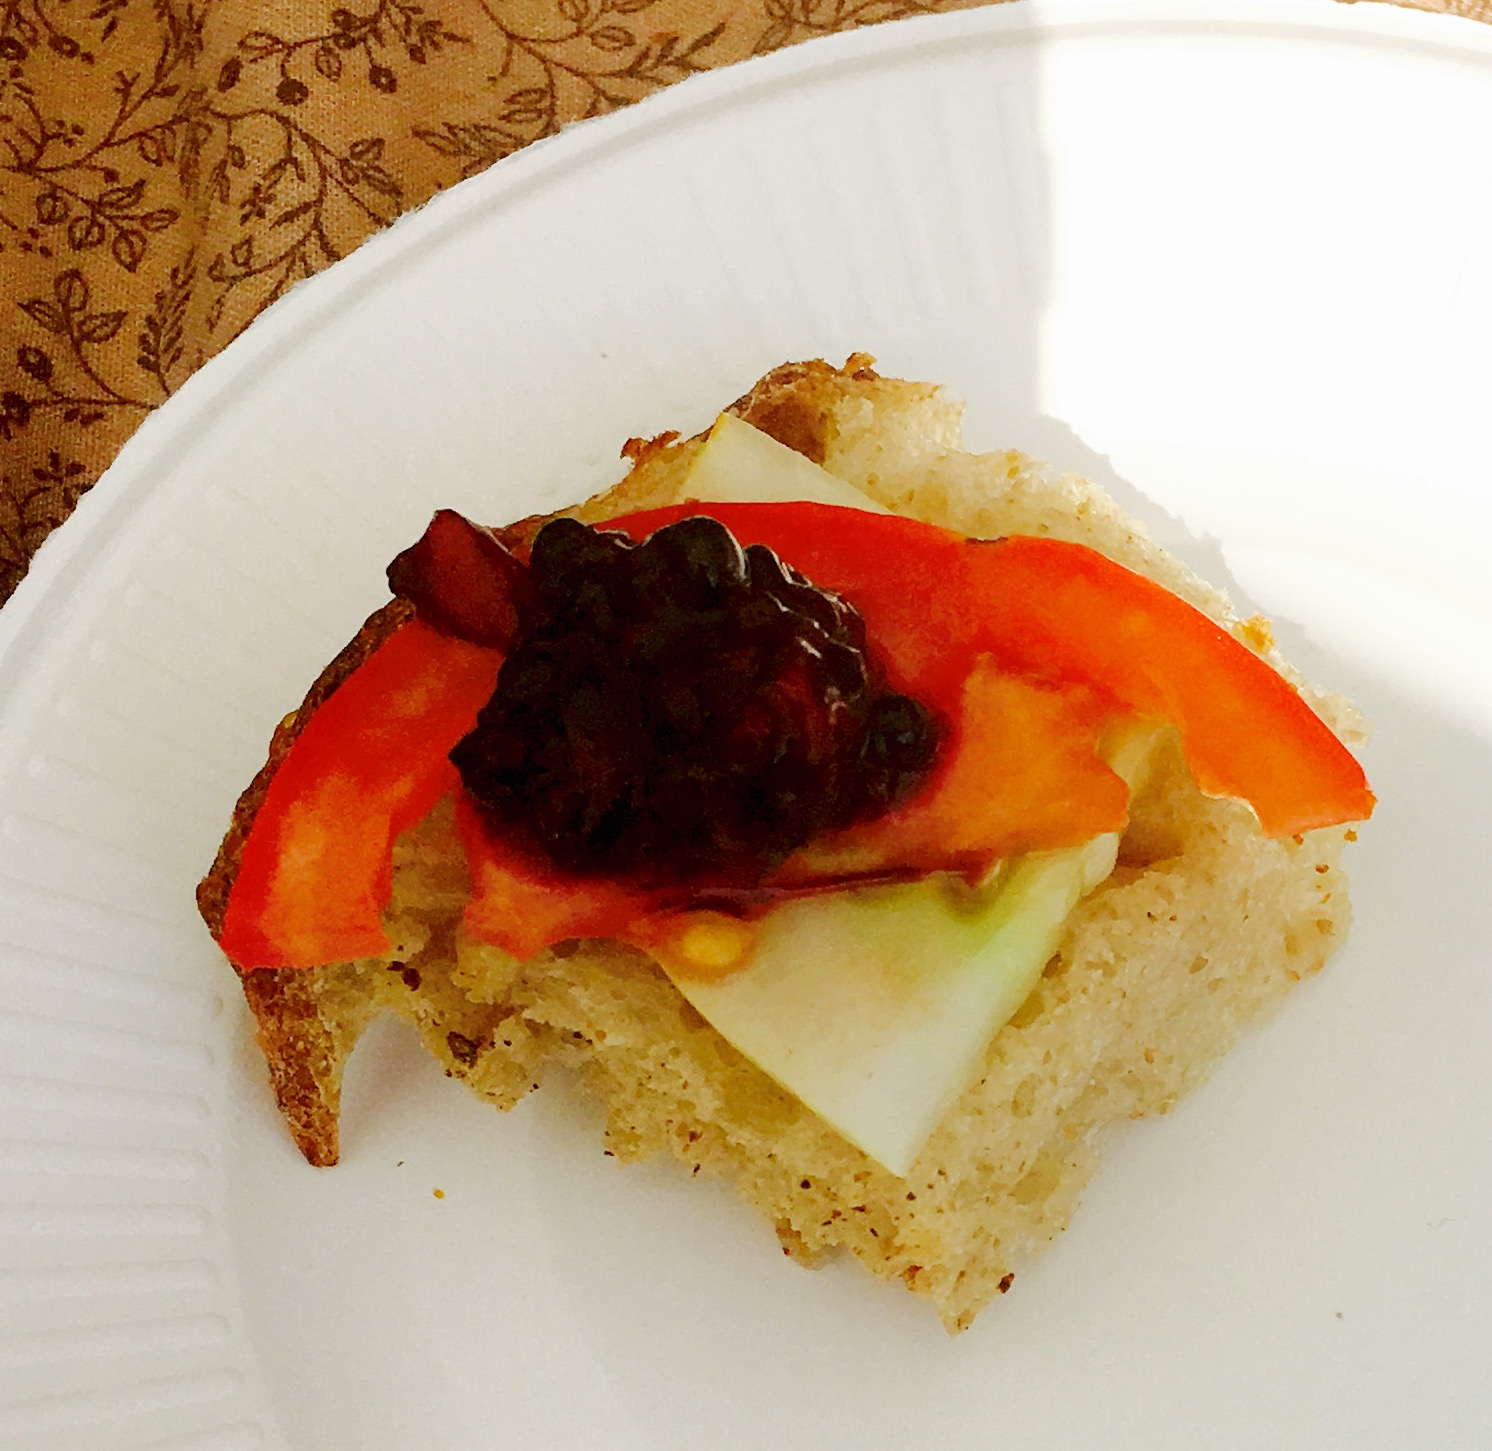 06-22-2016 Chef Paola Blackberry and Veggie Toast